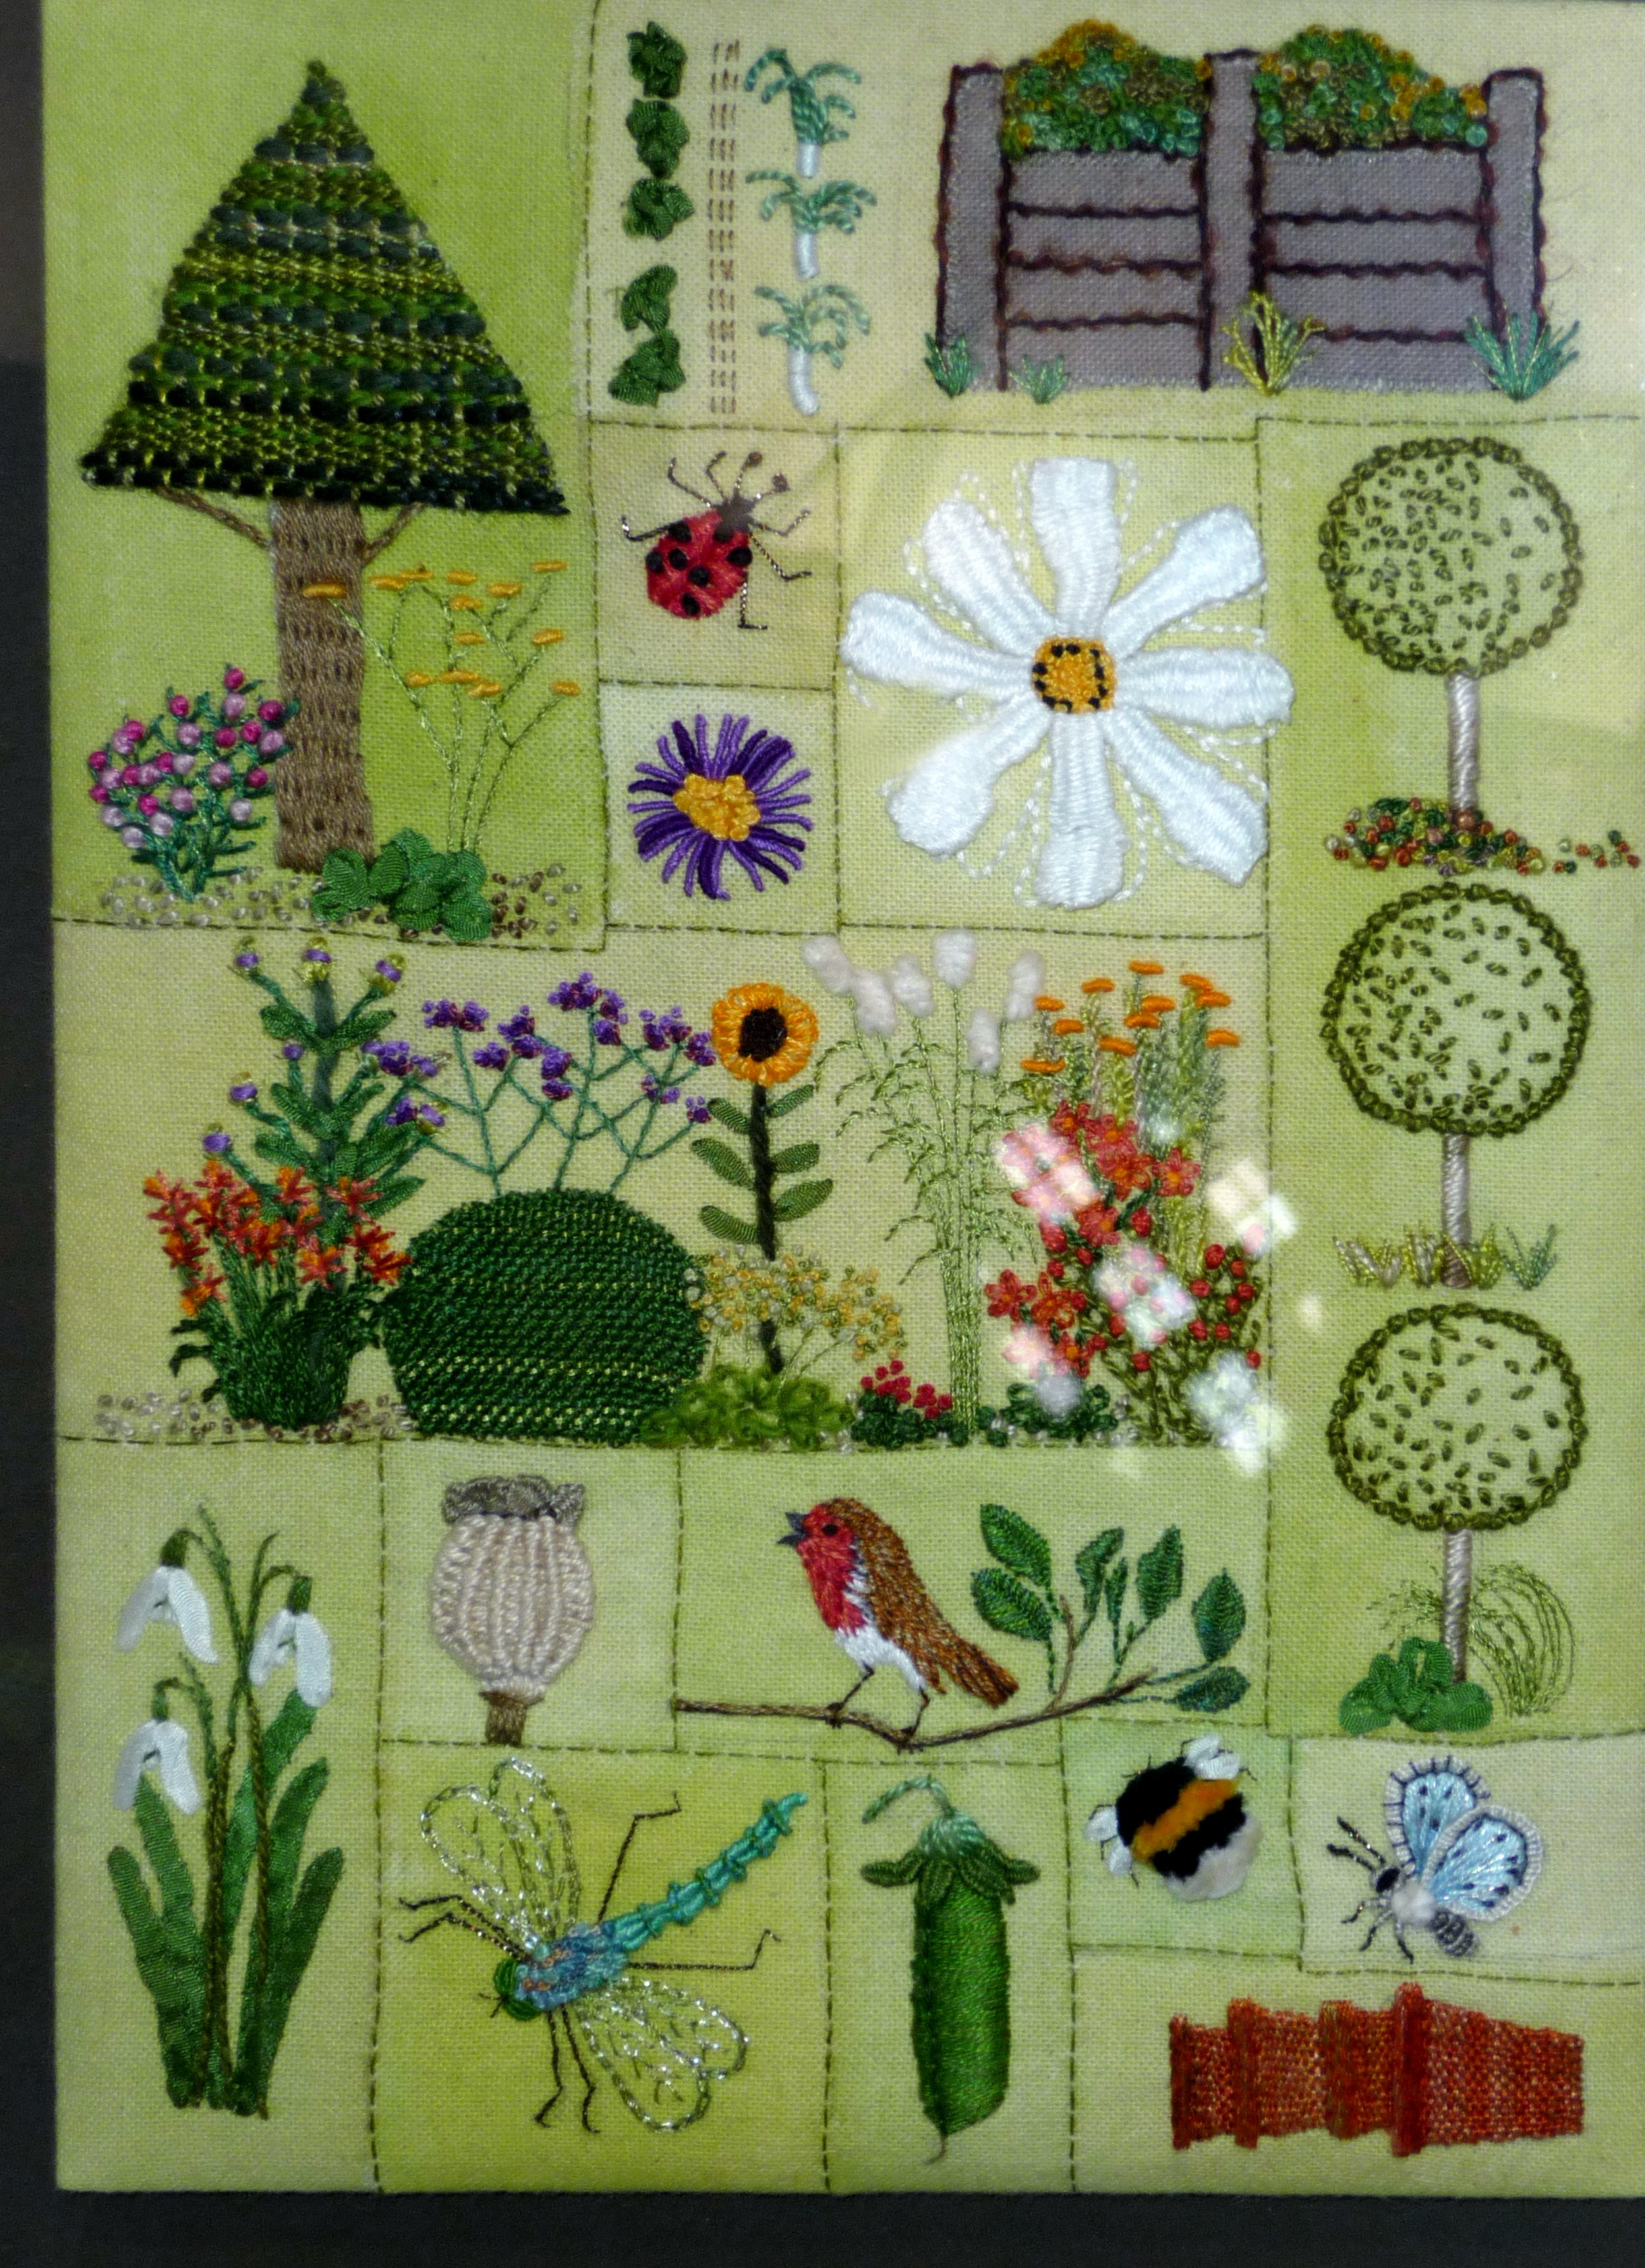 MY GARDEN by Marion Williams, hand embroidery